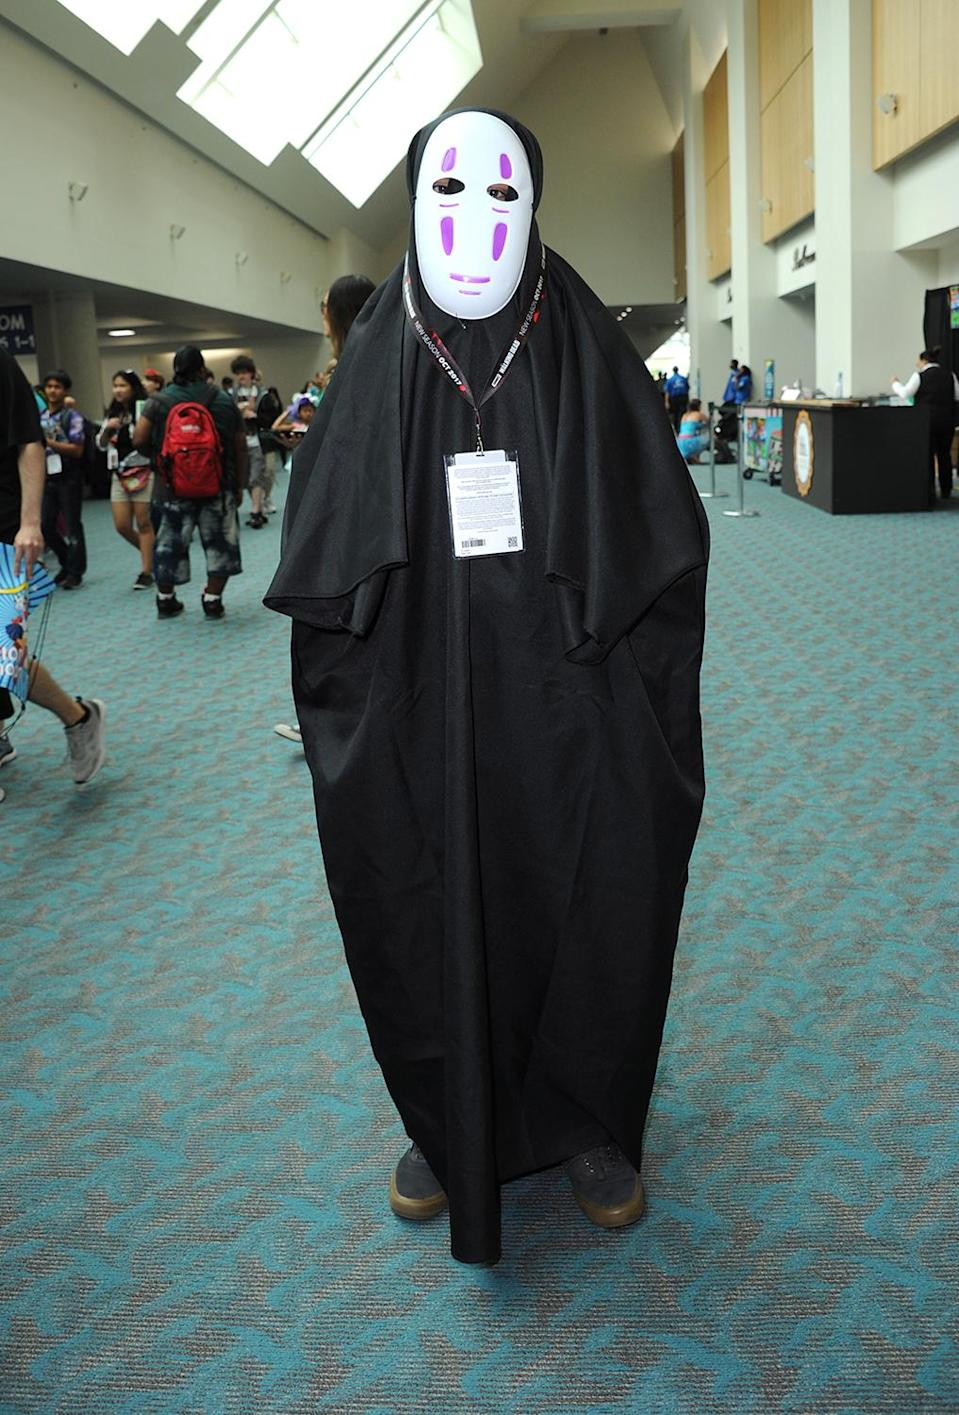 <p>Cosplayer dressed as Chichiyaku at Comic-Con International on July 20 in San Diego. (Photo: Albert L. Ortega/Getty Images) </p>